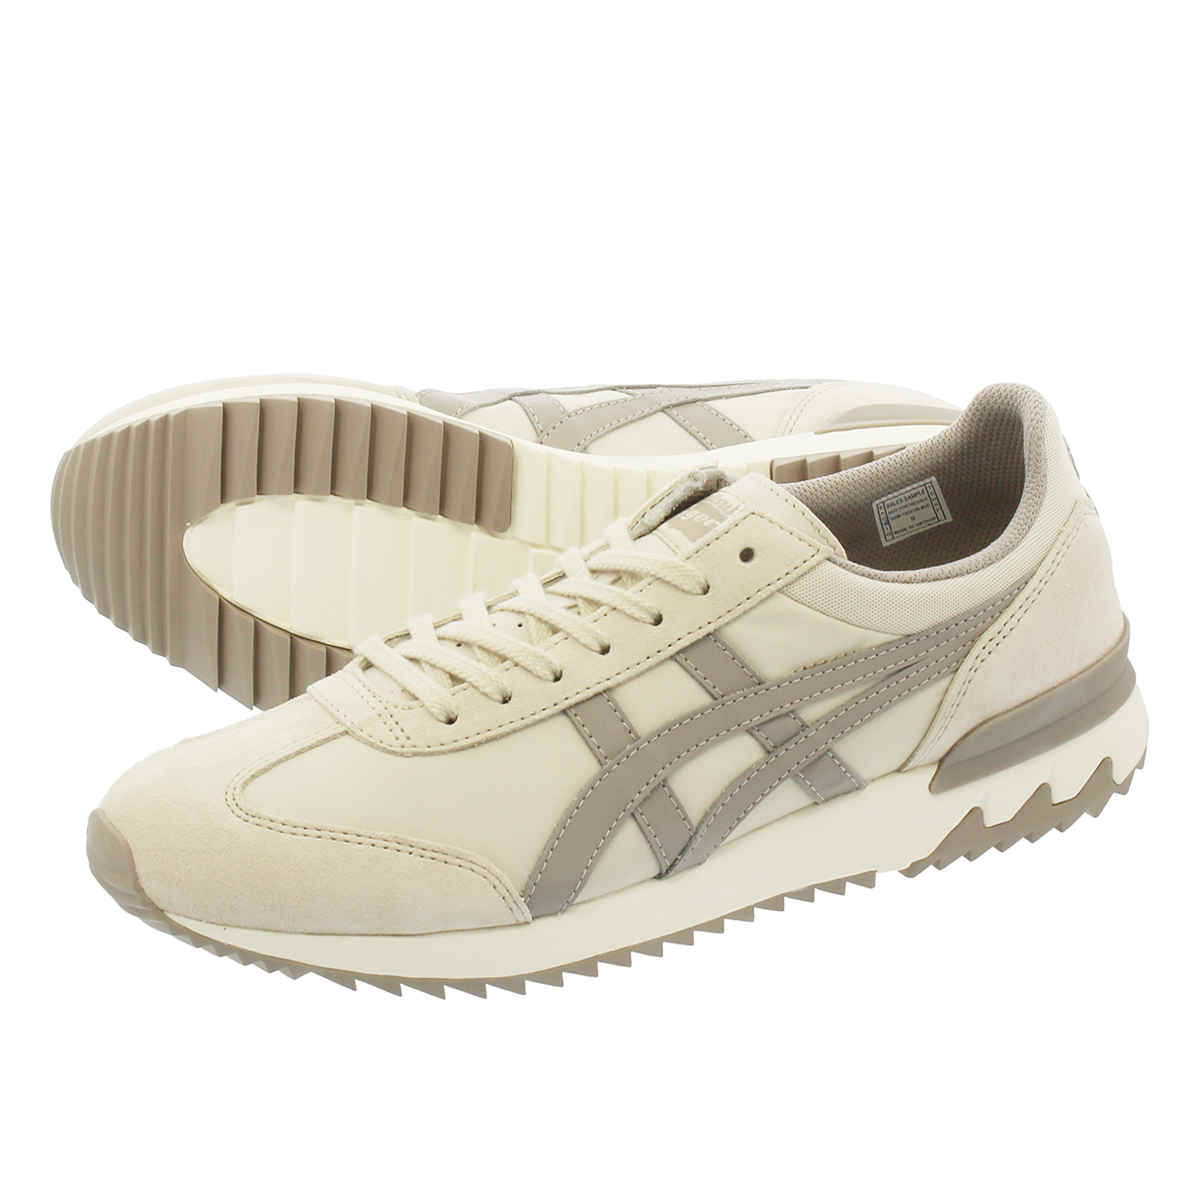 Onitsuka Tiger CALIFORNIA 78 EX オニツカタイガー カリフォルニア 78 EX OATMEAL/MOON ROCK 1183a194-250